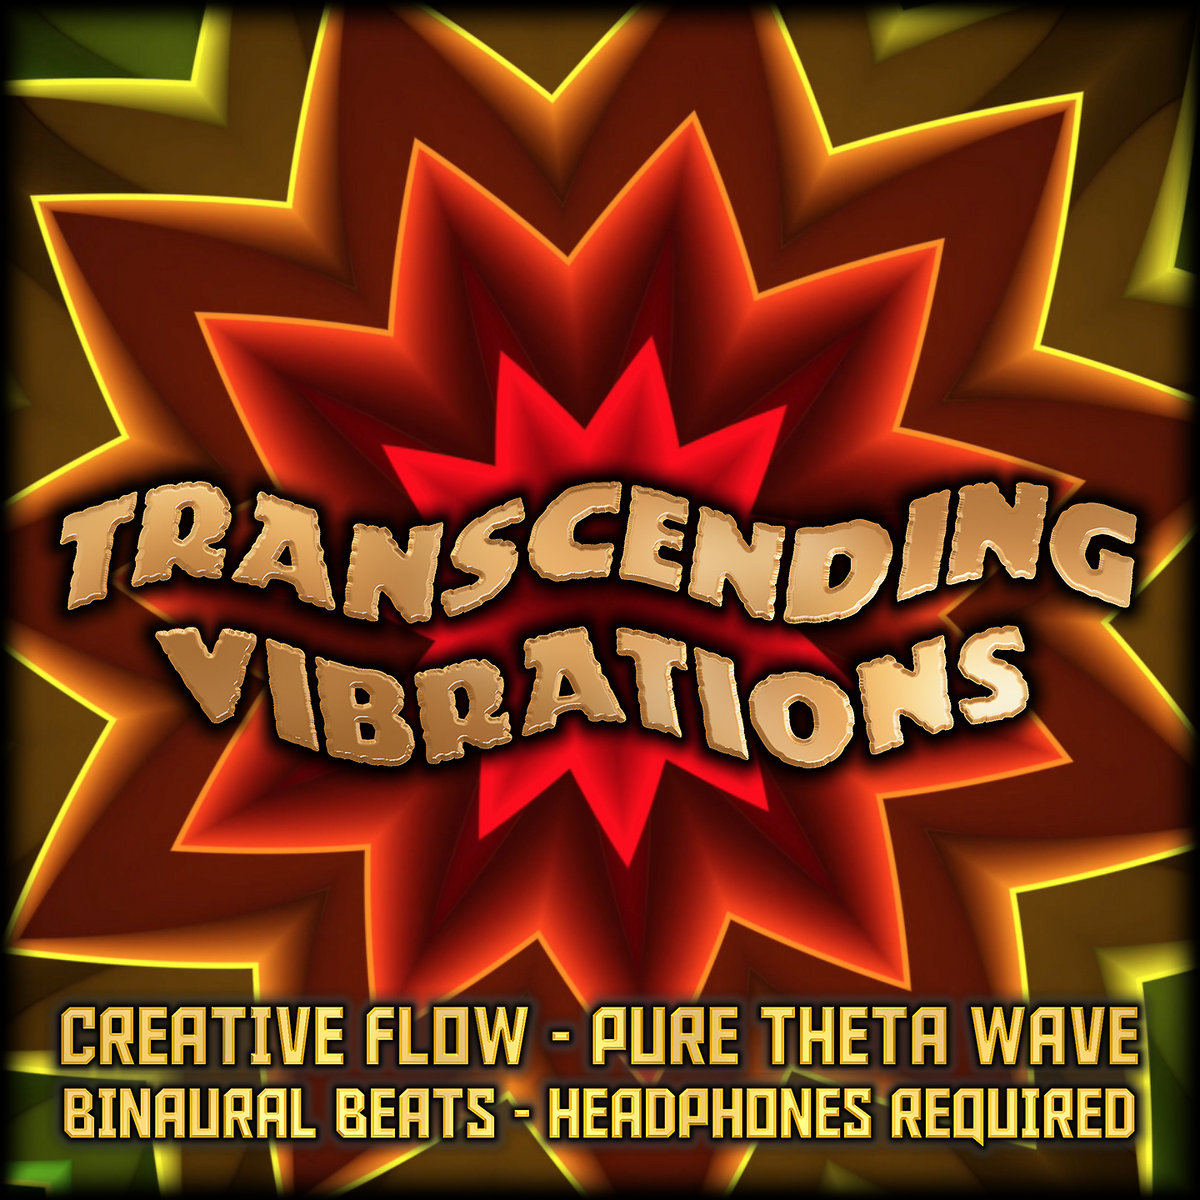 Creative Flow 3 6 Hz | Transcending Vibrations